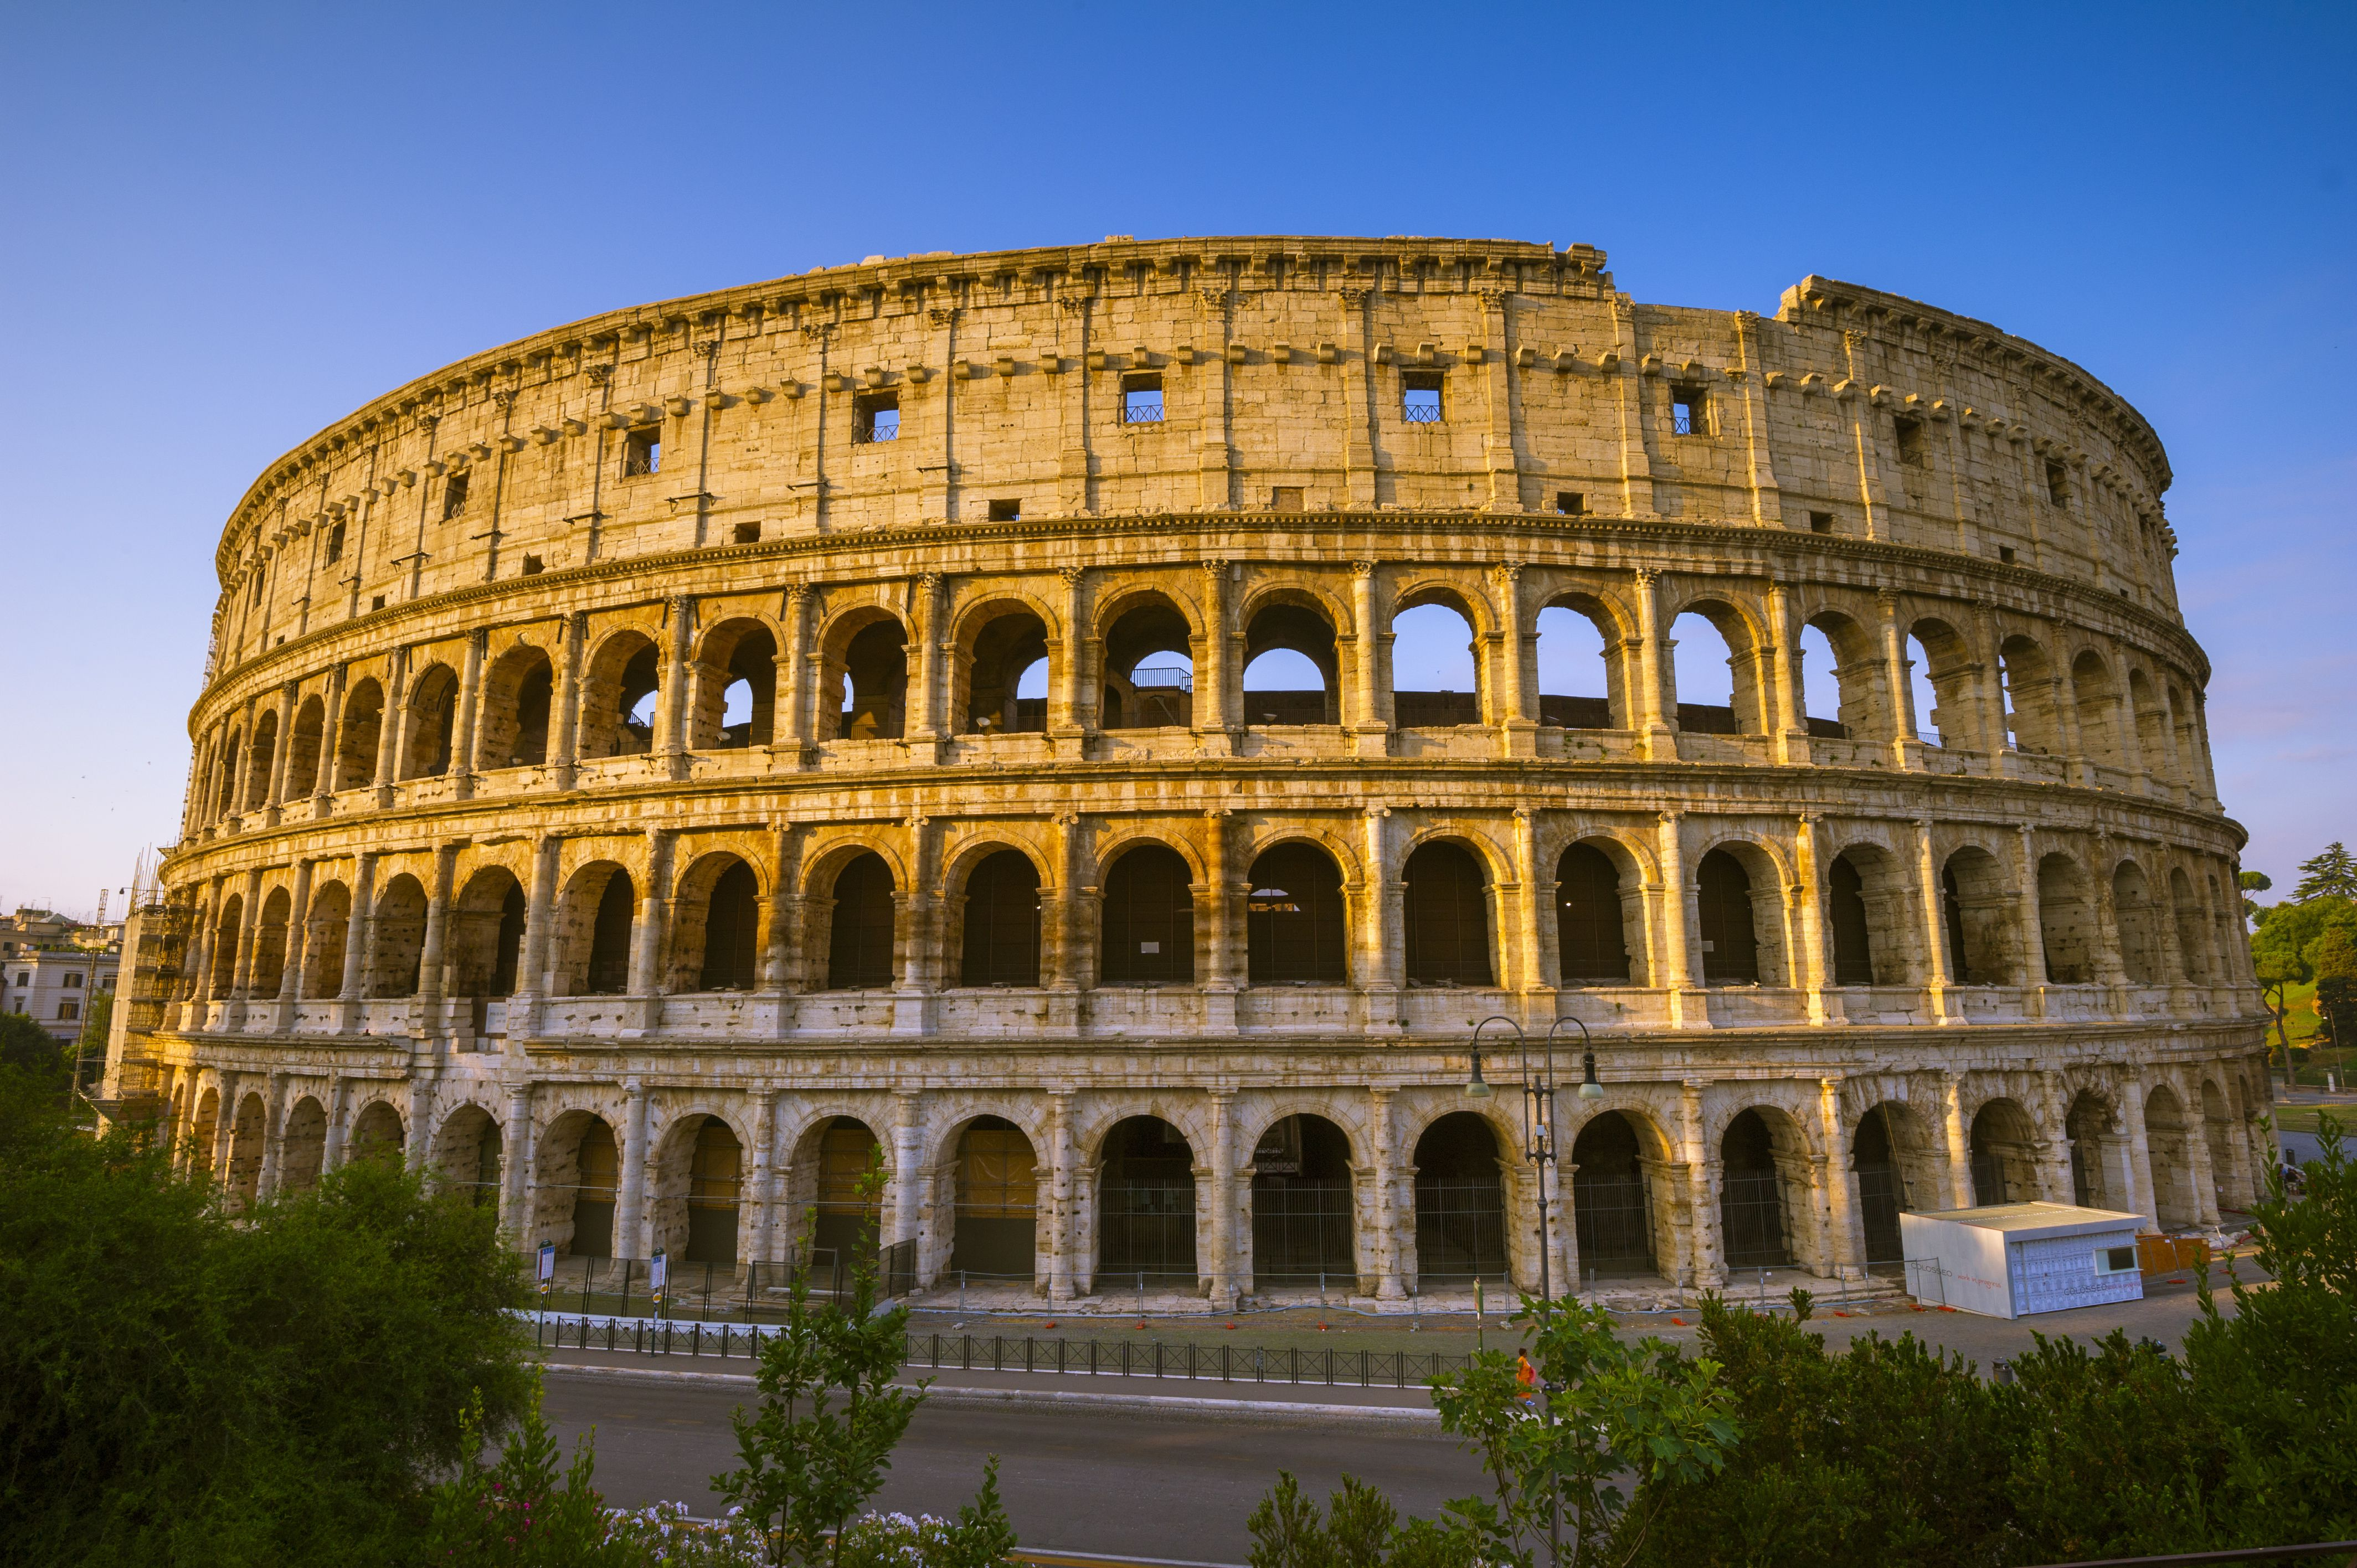 Roman Colosseum at sunrise, three stories of arches and top story of pilasters and rectangular openings